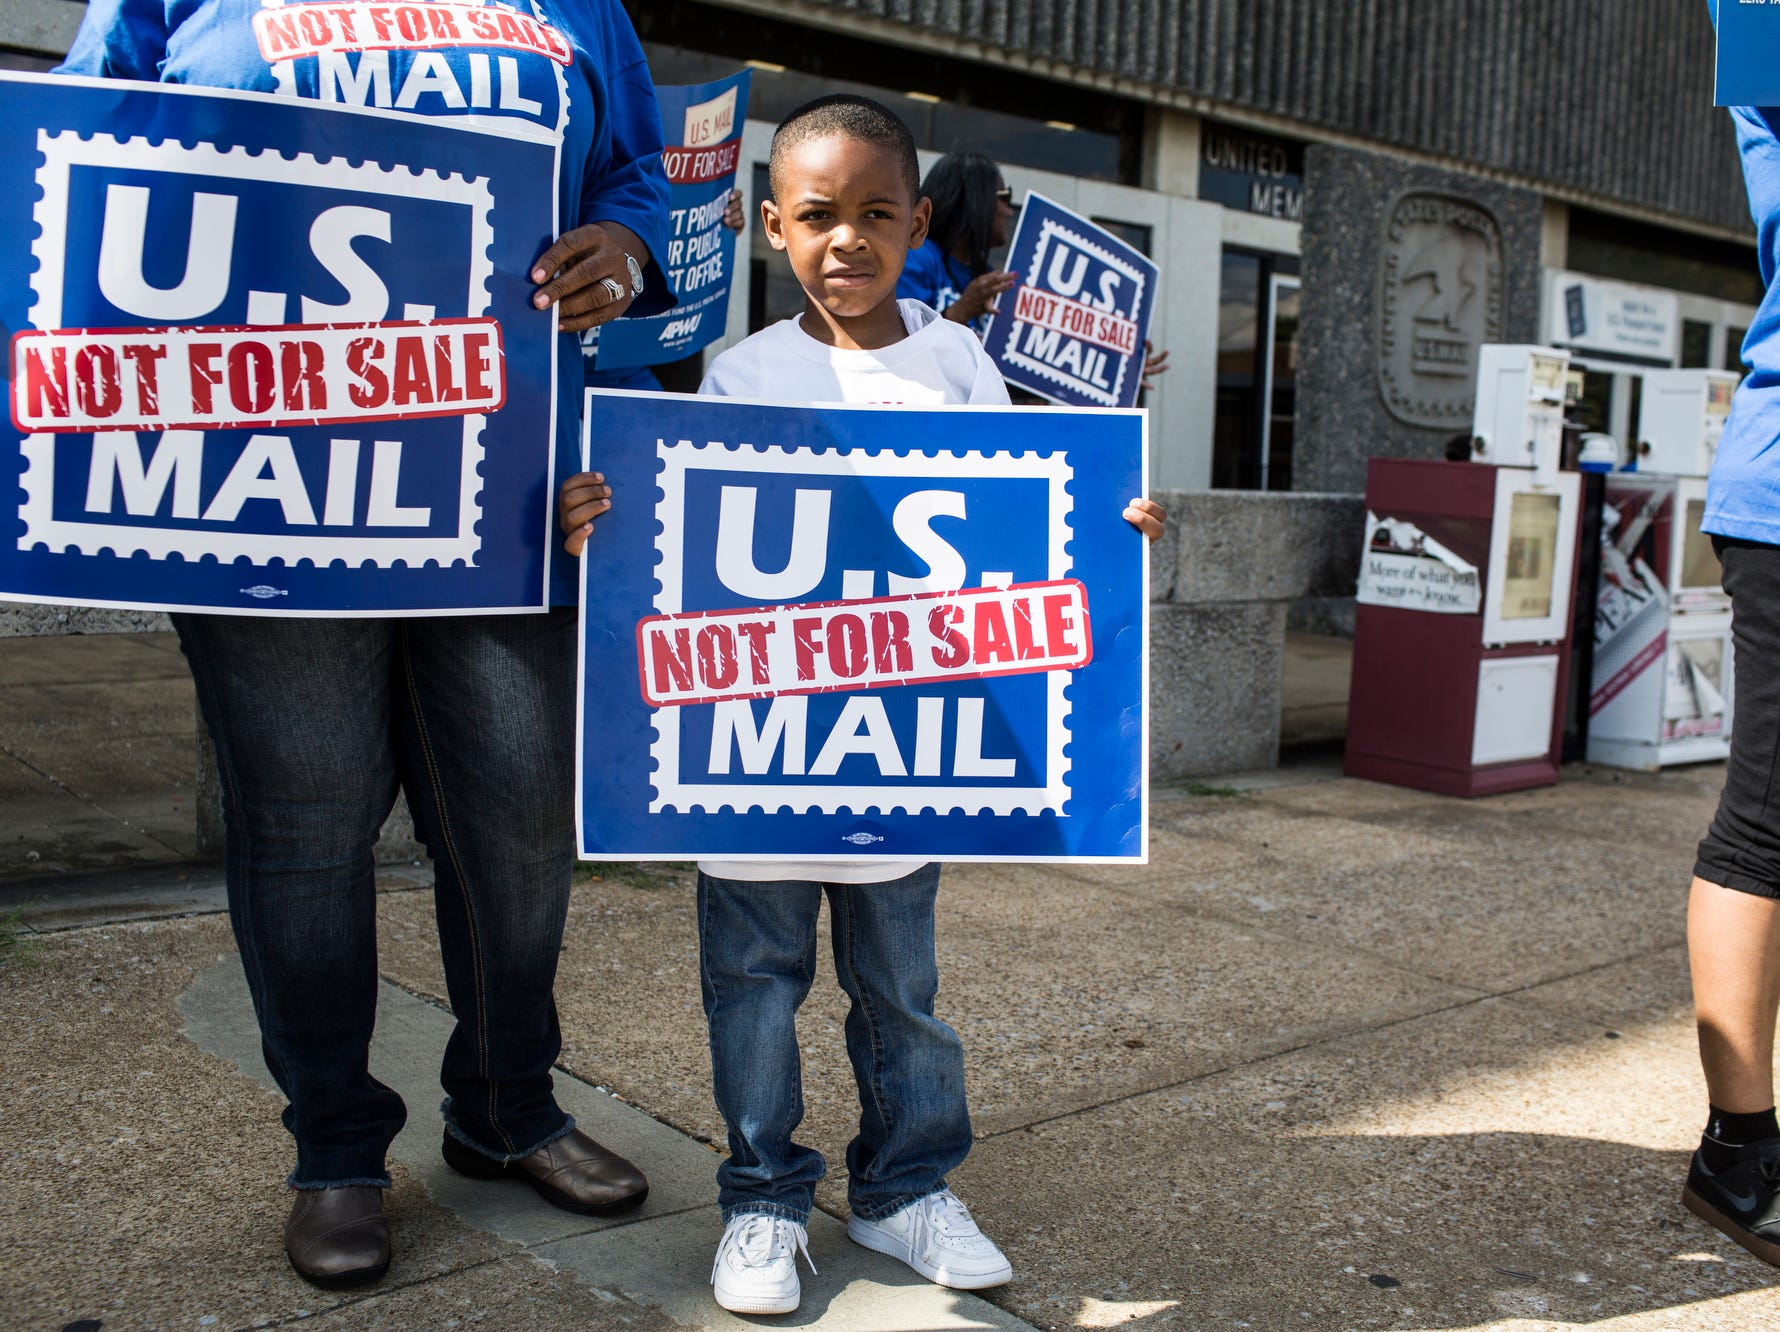 October 08 2018 - Octavious Woods, 6, stands with his grandmother, Bonita Tate, left, while U.S. Postal Service employees, joined by community supporters, rallied on Monday in front of the Memphis Post Office. Participants sounded an alarm against a proposal announced in June by the White House's Office of Management and Budget to privatize the U.S. Postal Service.